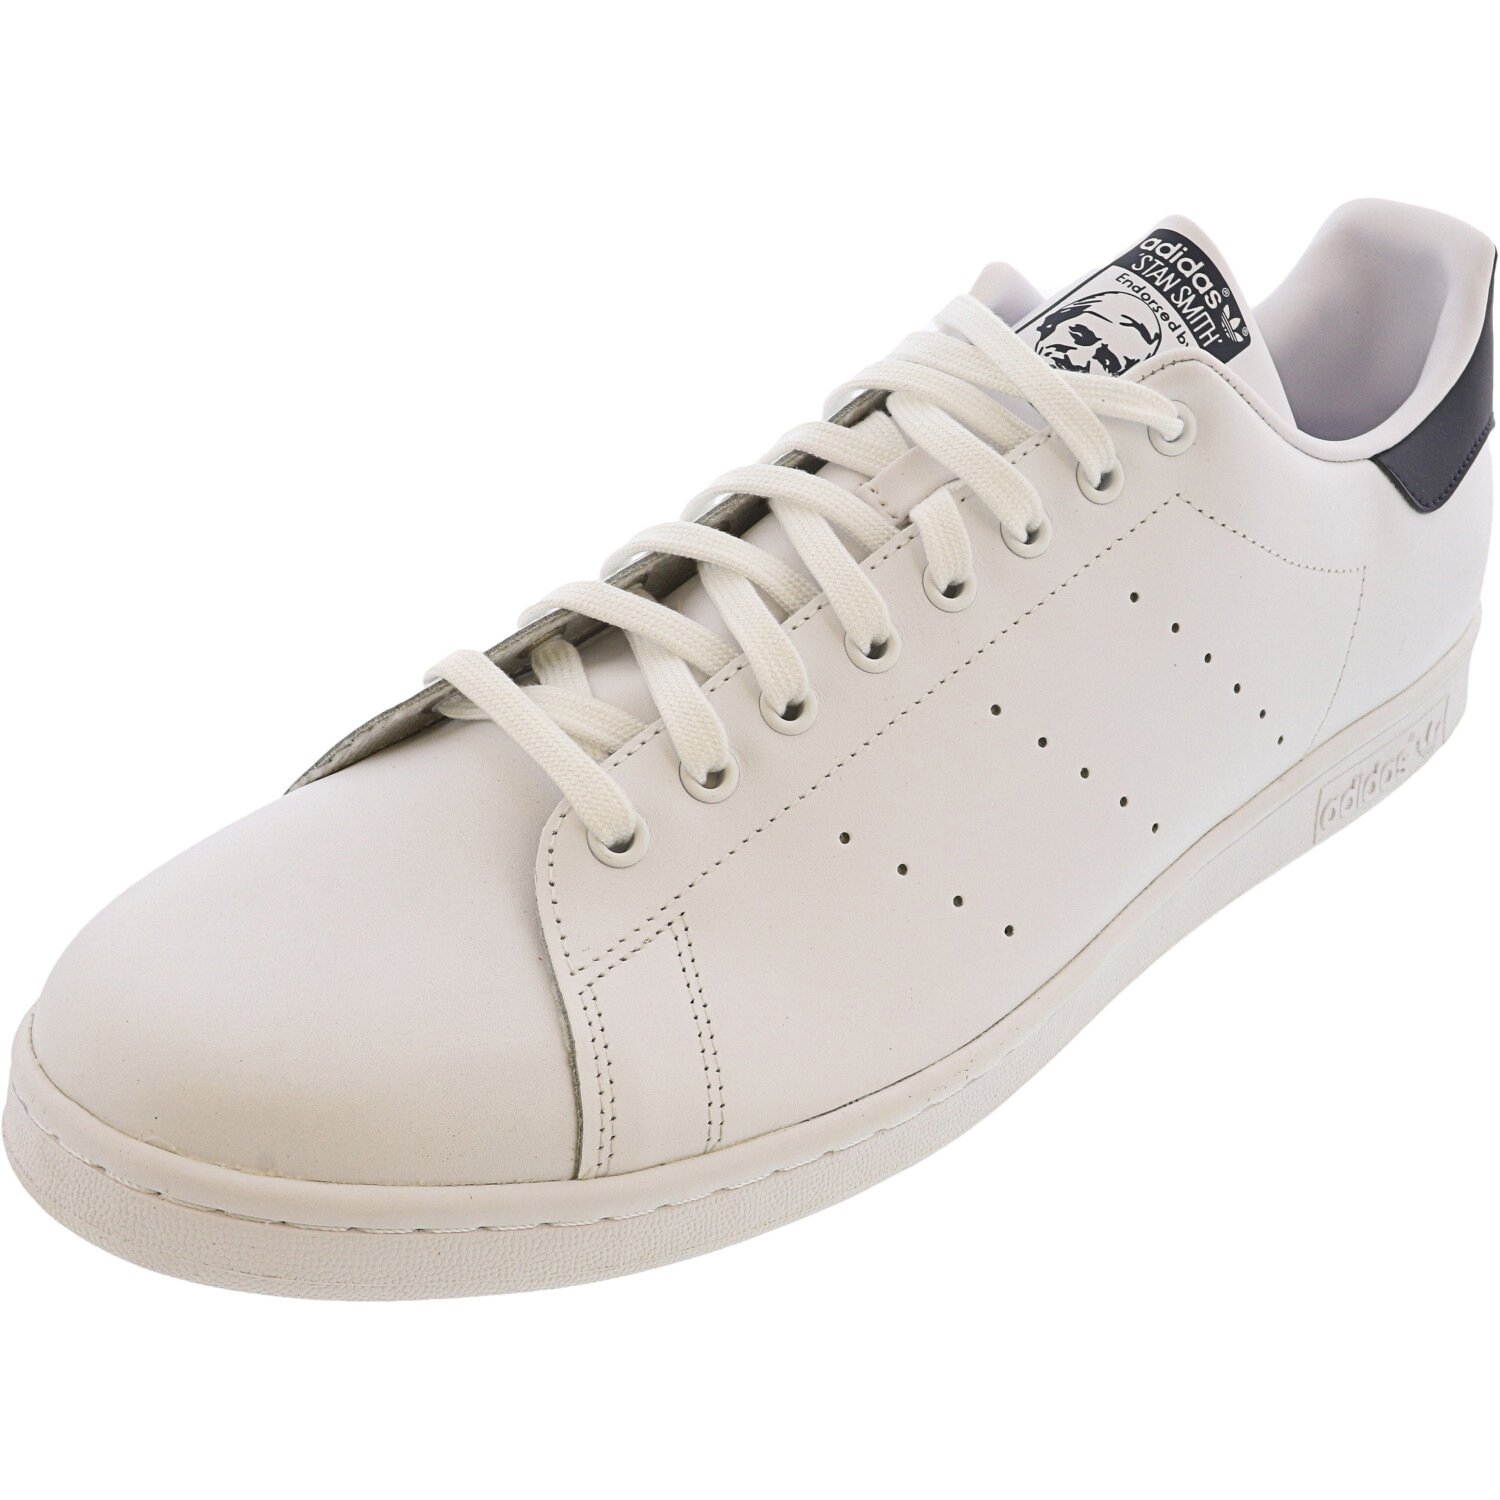 Adidas Men's Stan Smith Core White / Ankle-High Leather Sneaker - 19M